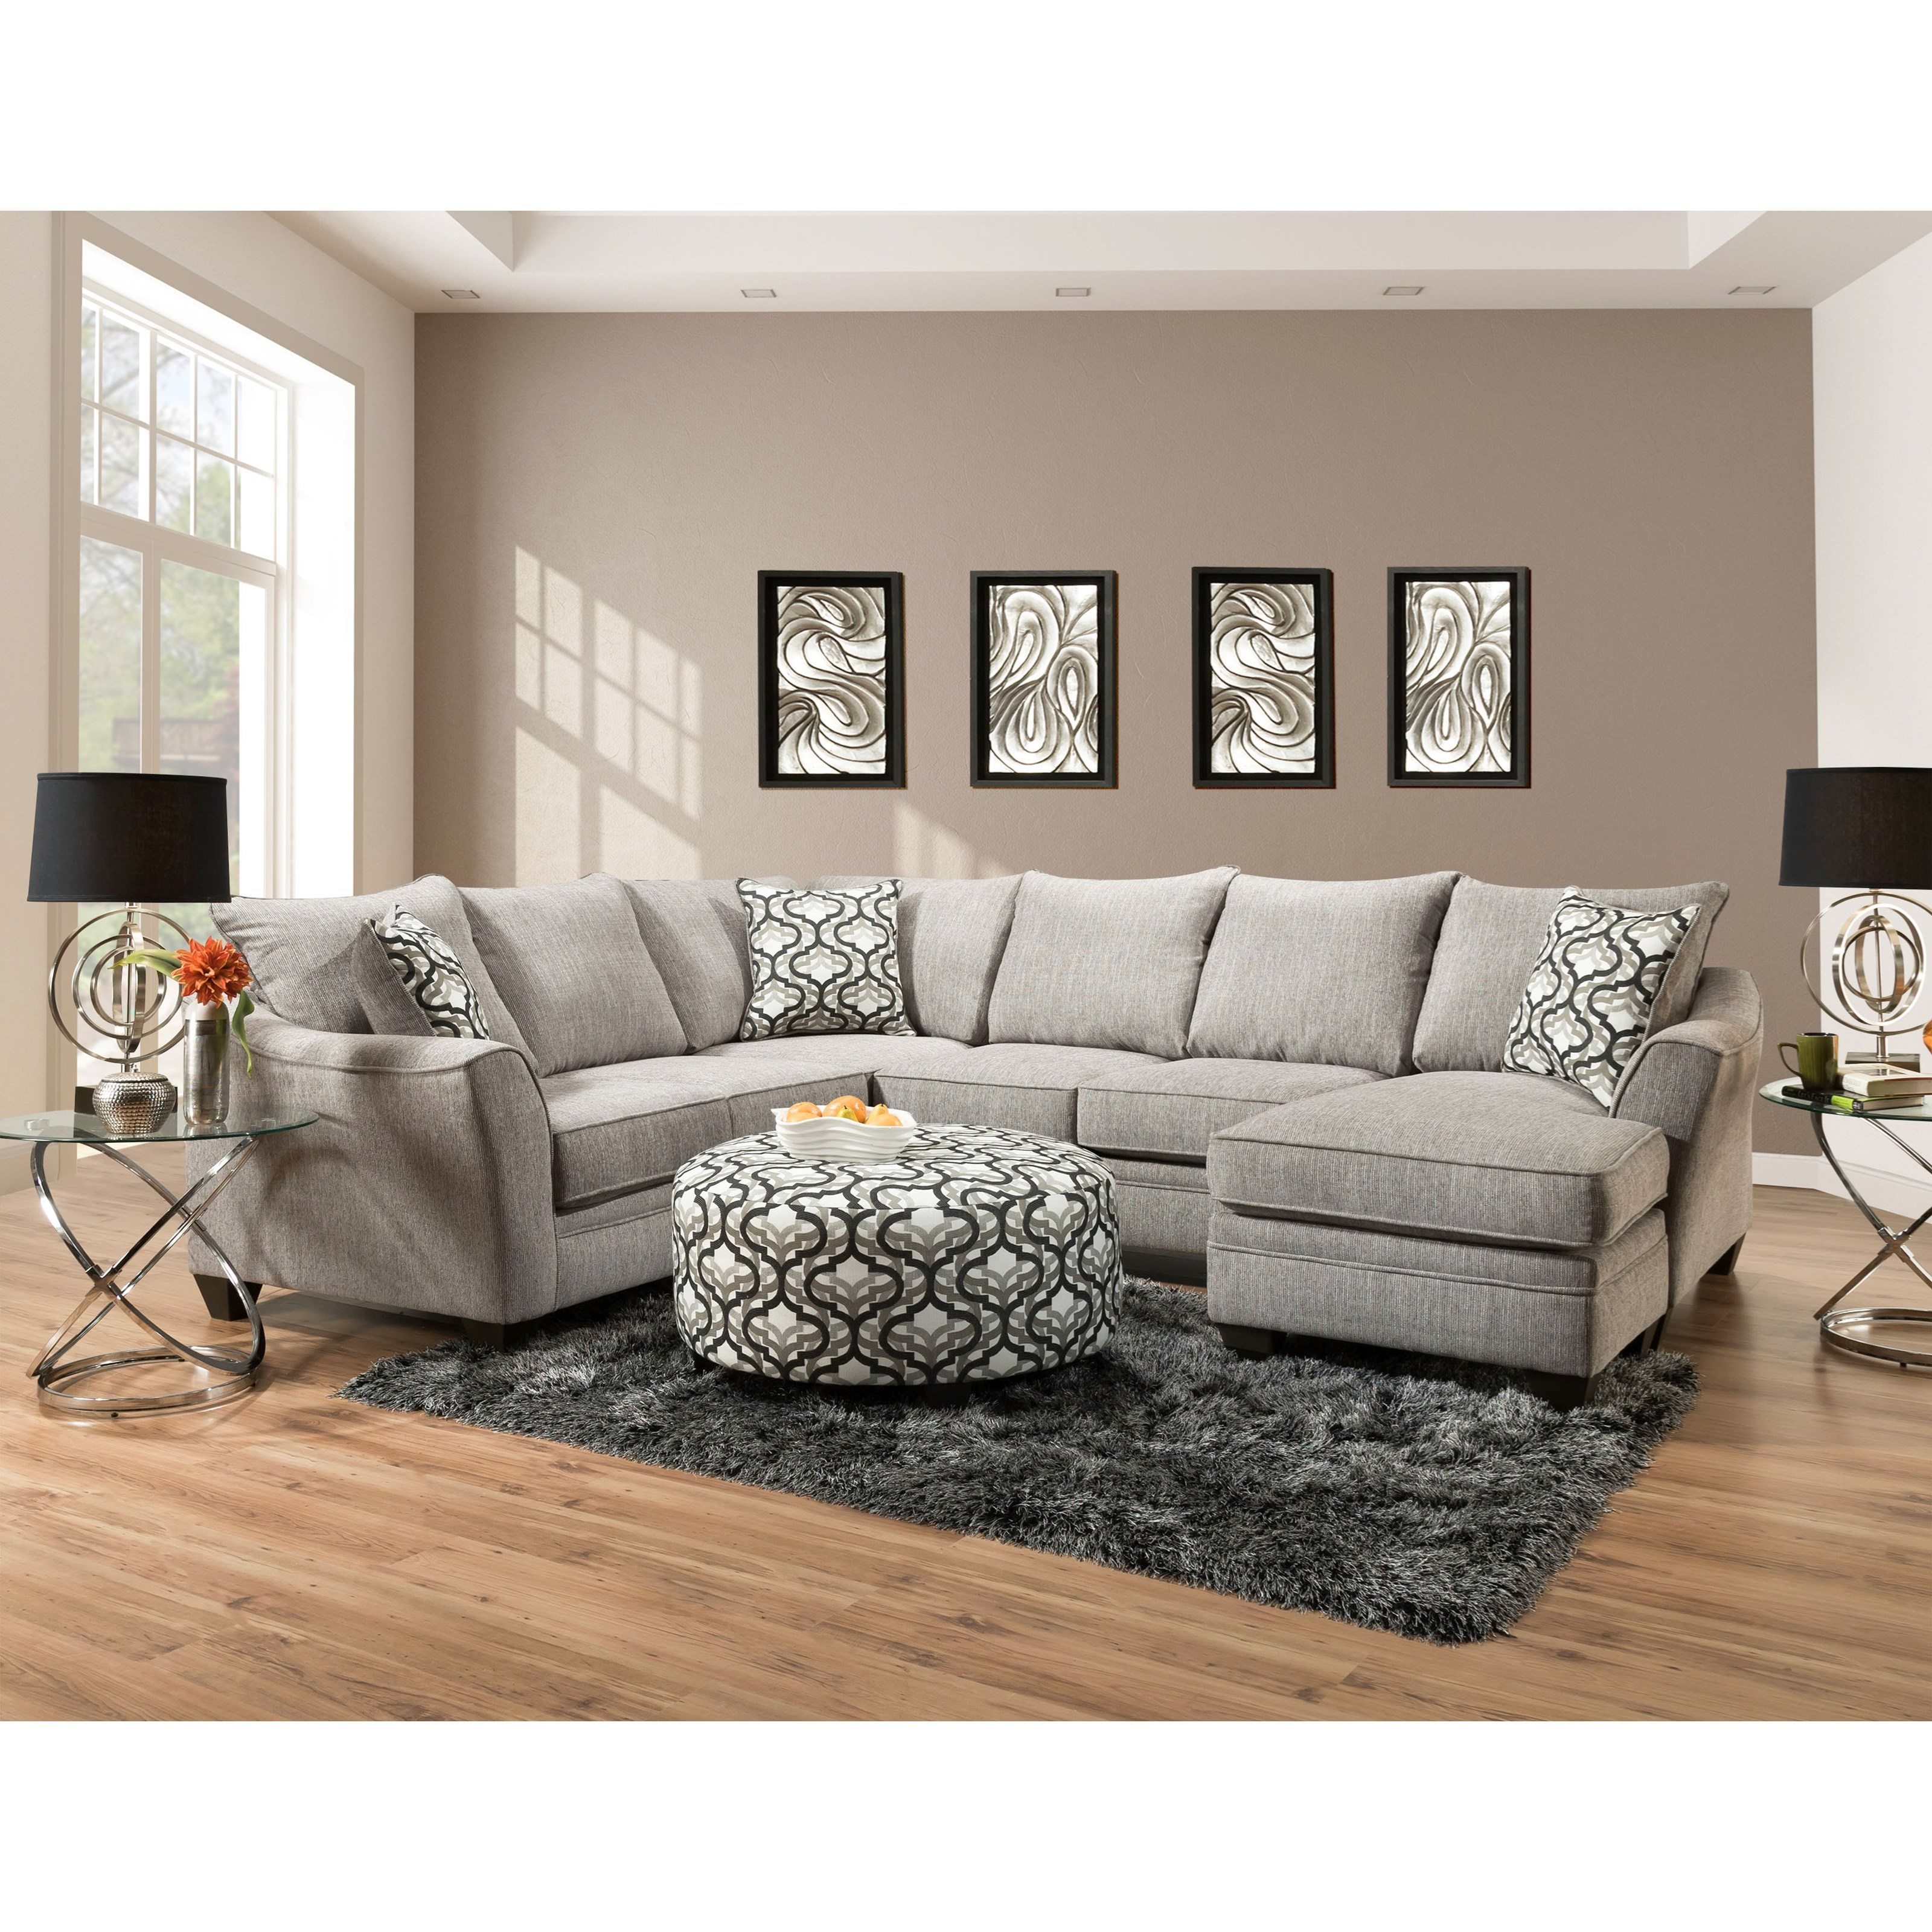 4810 5 Seat Sectional Sofa with Chaise by Peak Living at Prime Brothers Furniture